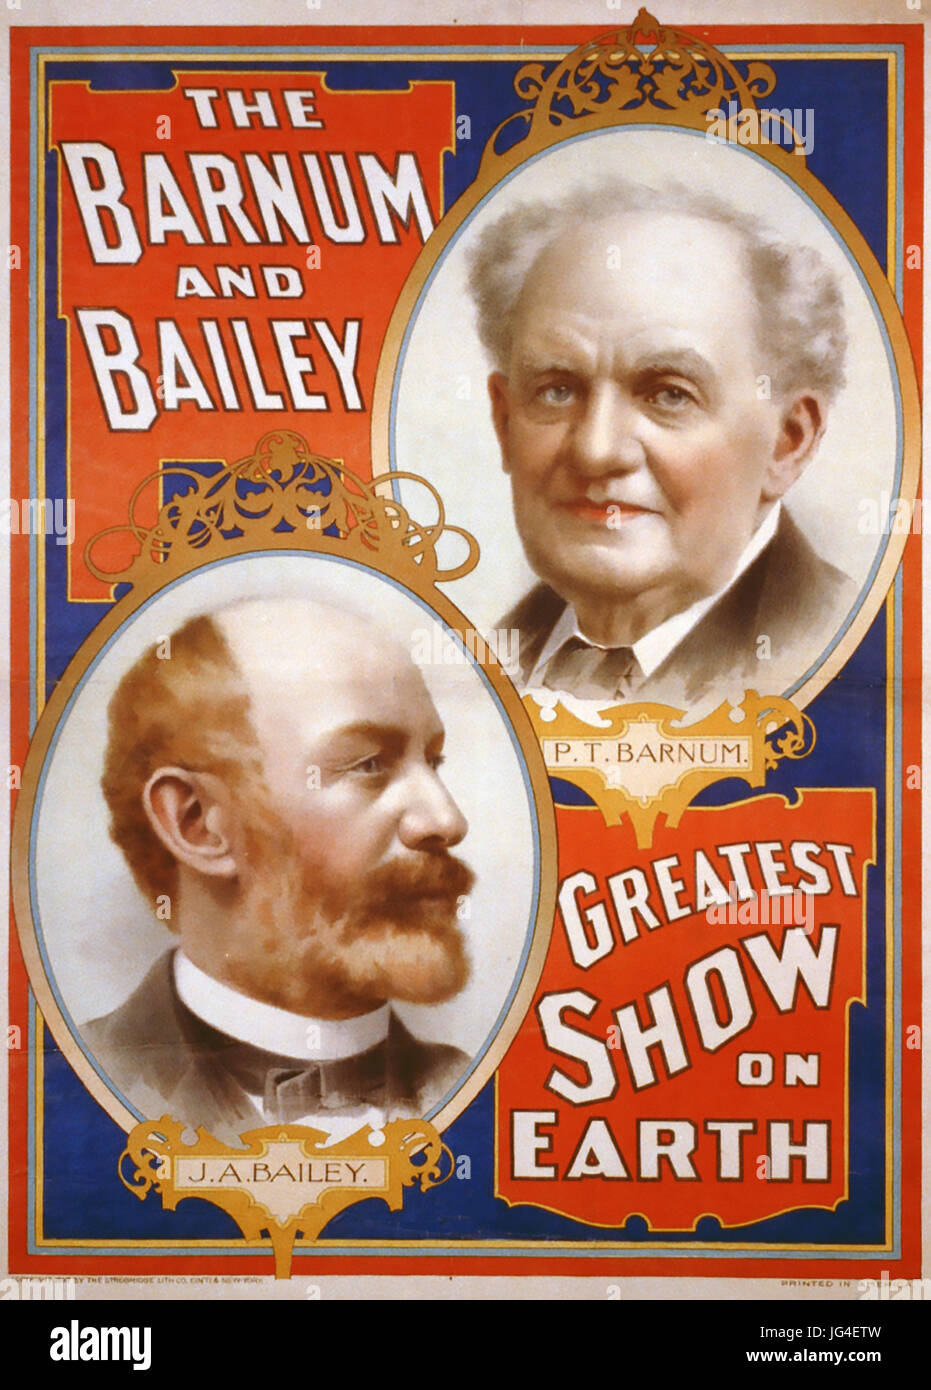 BARNUM AND BAILEY circus poster about 1885 - Stock Image